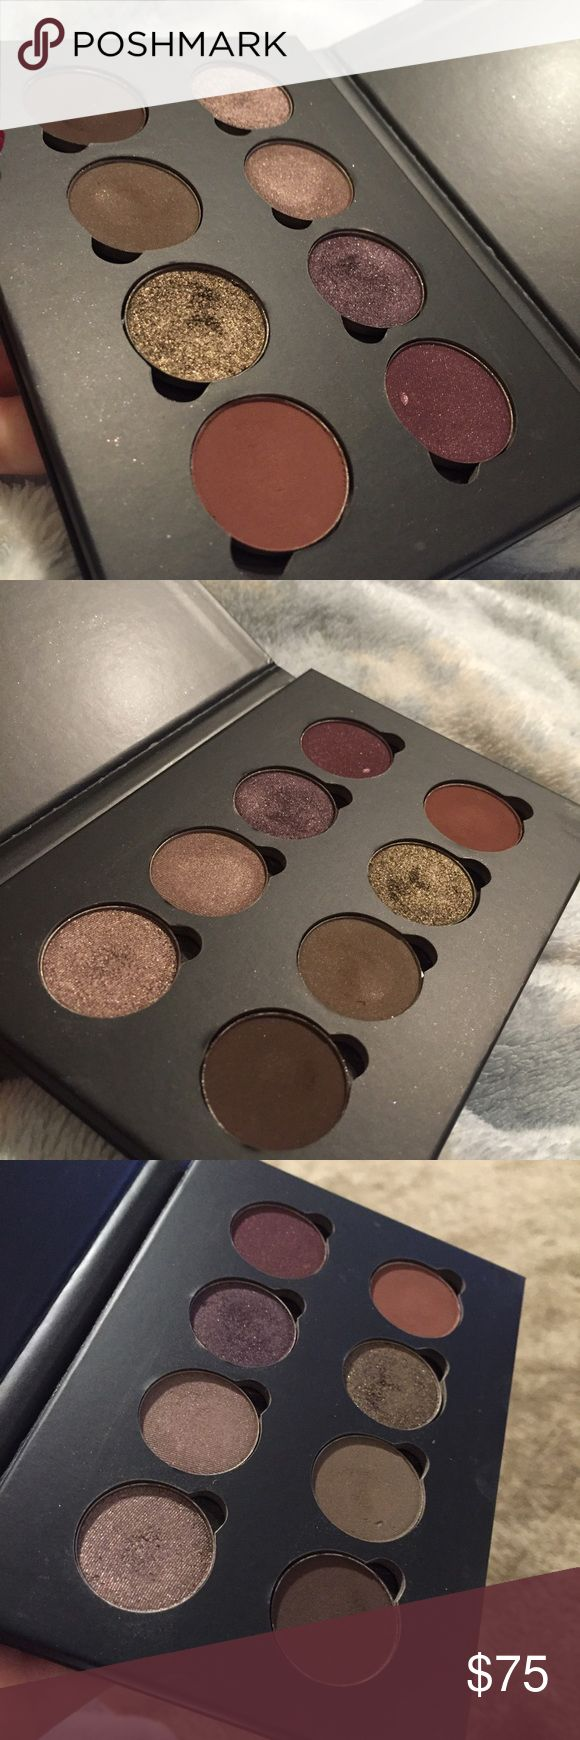 Custom 8 shadow Anastasia Beverly Hills palette. Custom 8 shadow Anastasia Beverly Hills palette. Only a couple of these were actually used. Most are just swatched or untouched. Colors are: chocolate crumble, custom, not today, aubergine, smoke, ash brown, brownie, red earth. Bought from the ABH website. Please ask any questions! No trades. Anastasia Beverly Hills Makeup Eyeshadow